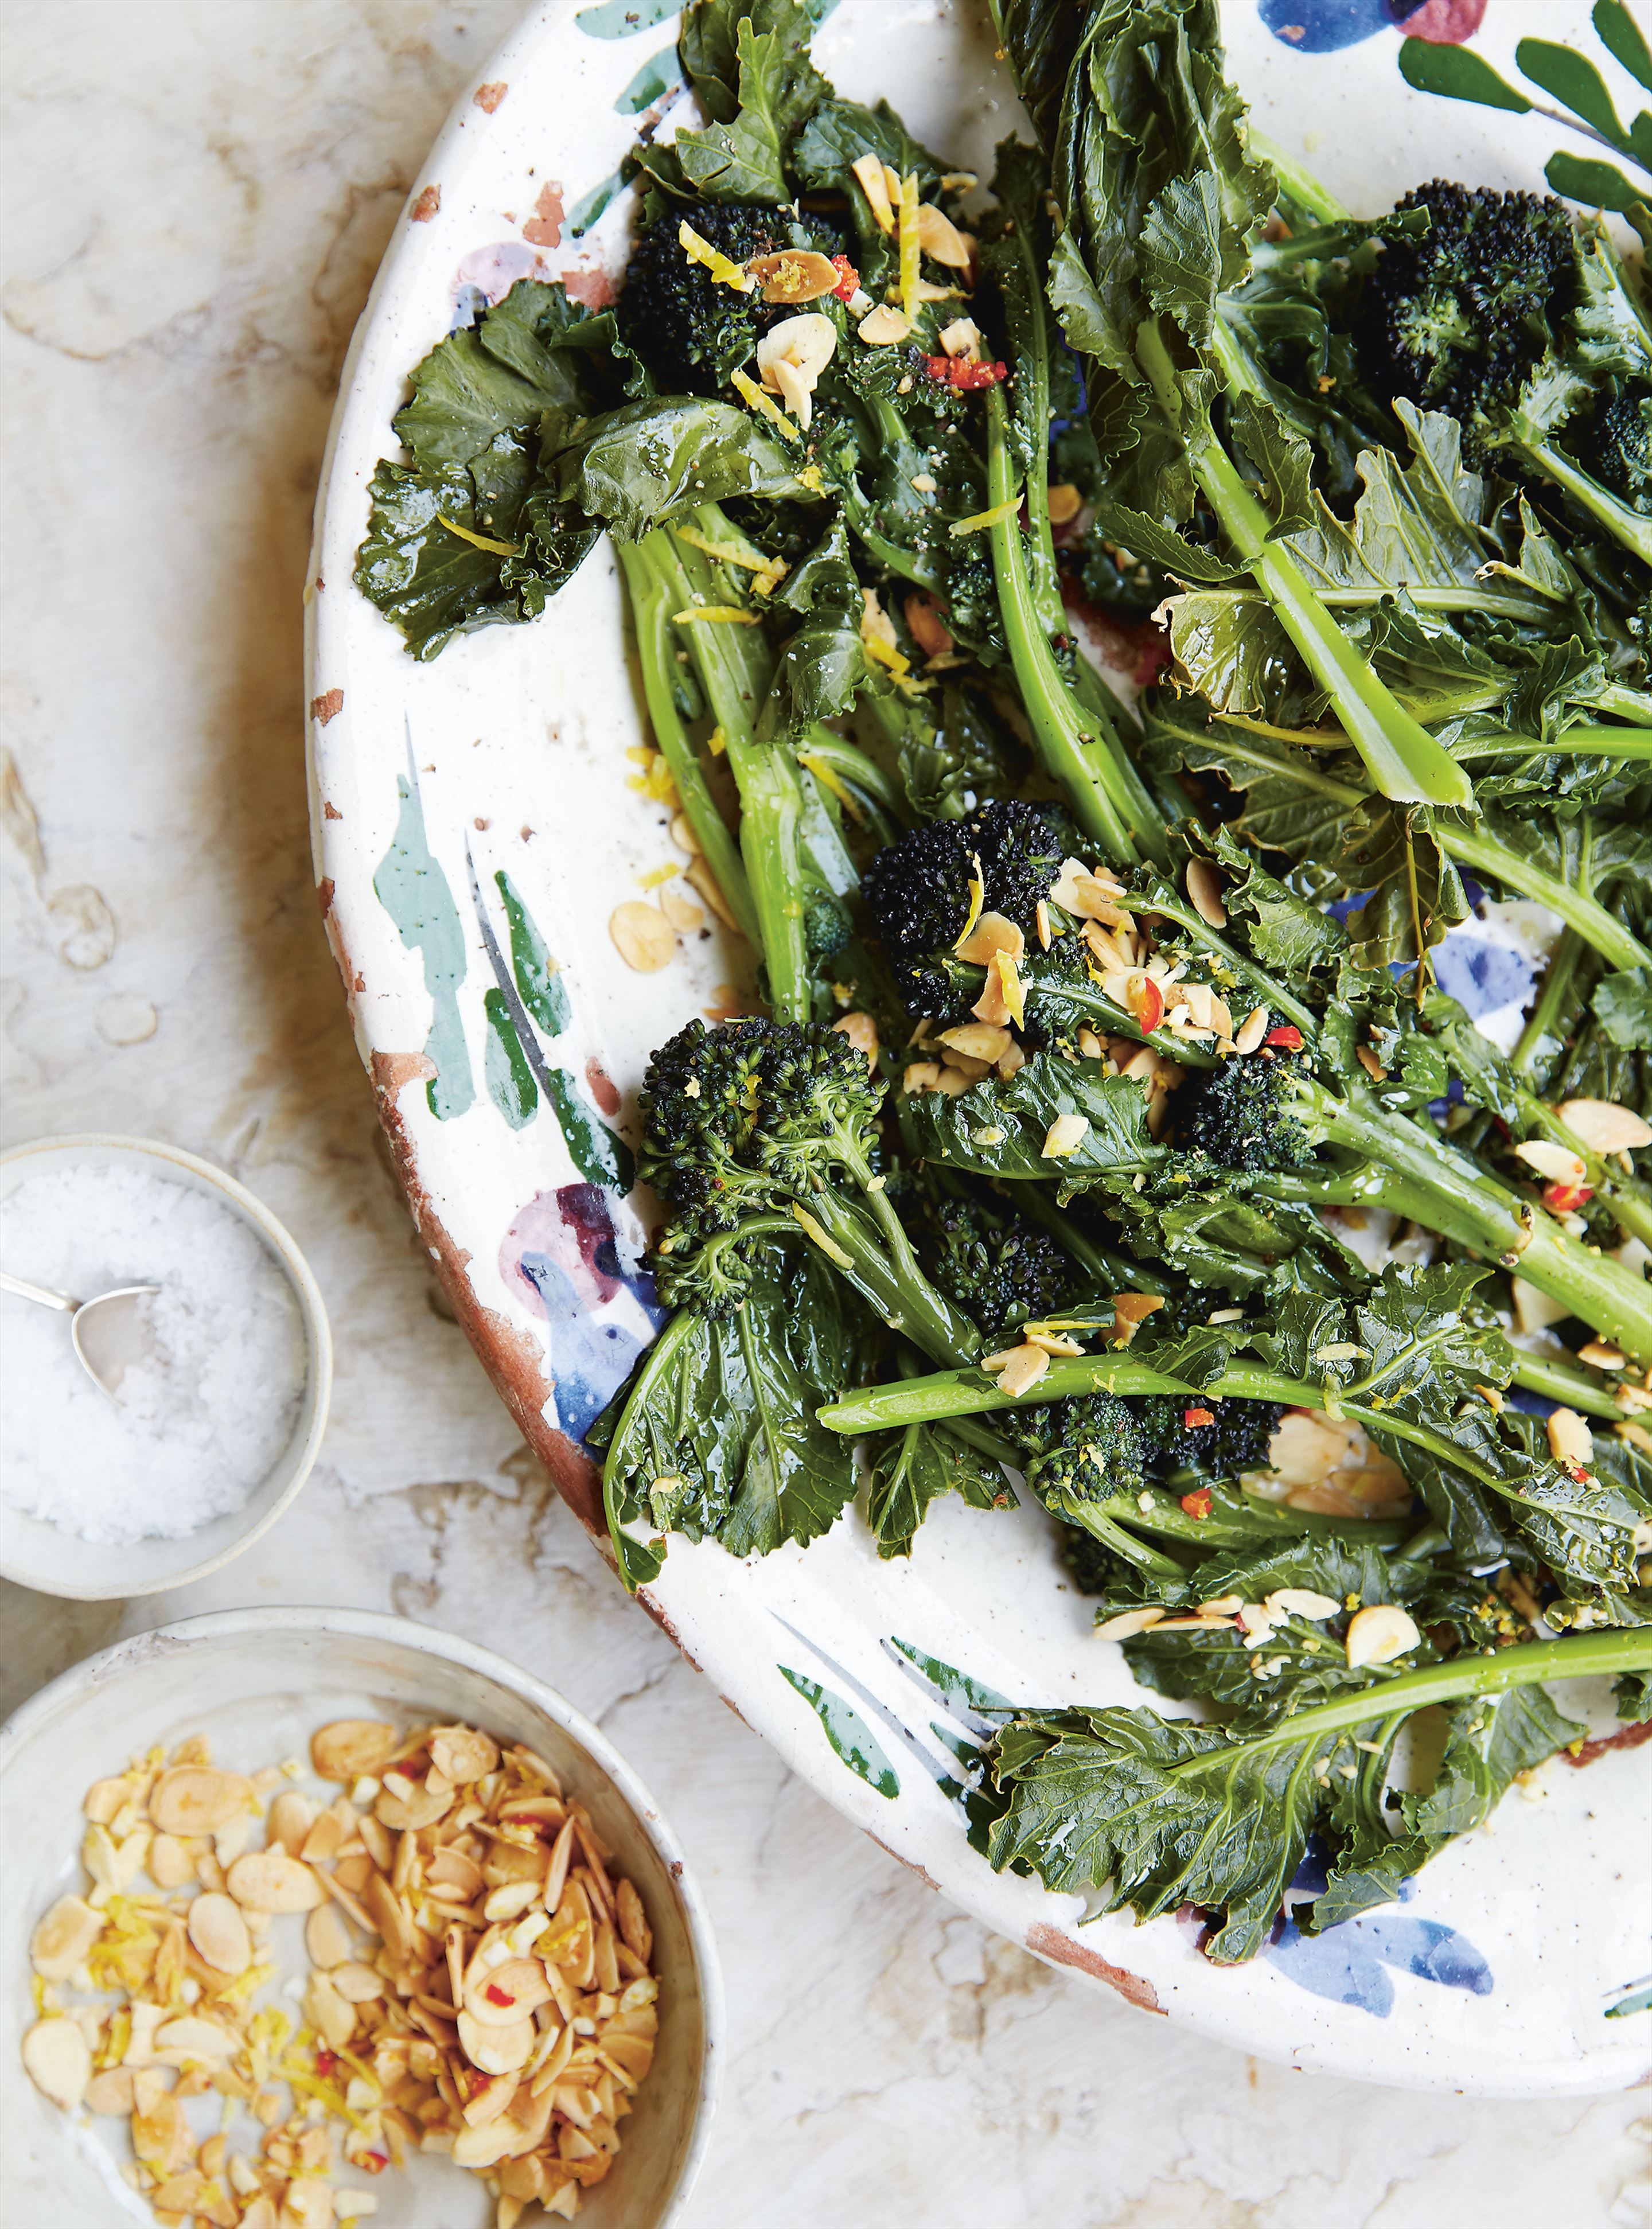 Purple sprouting broccoli with spicy almond crunch